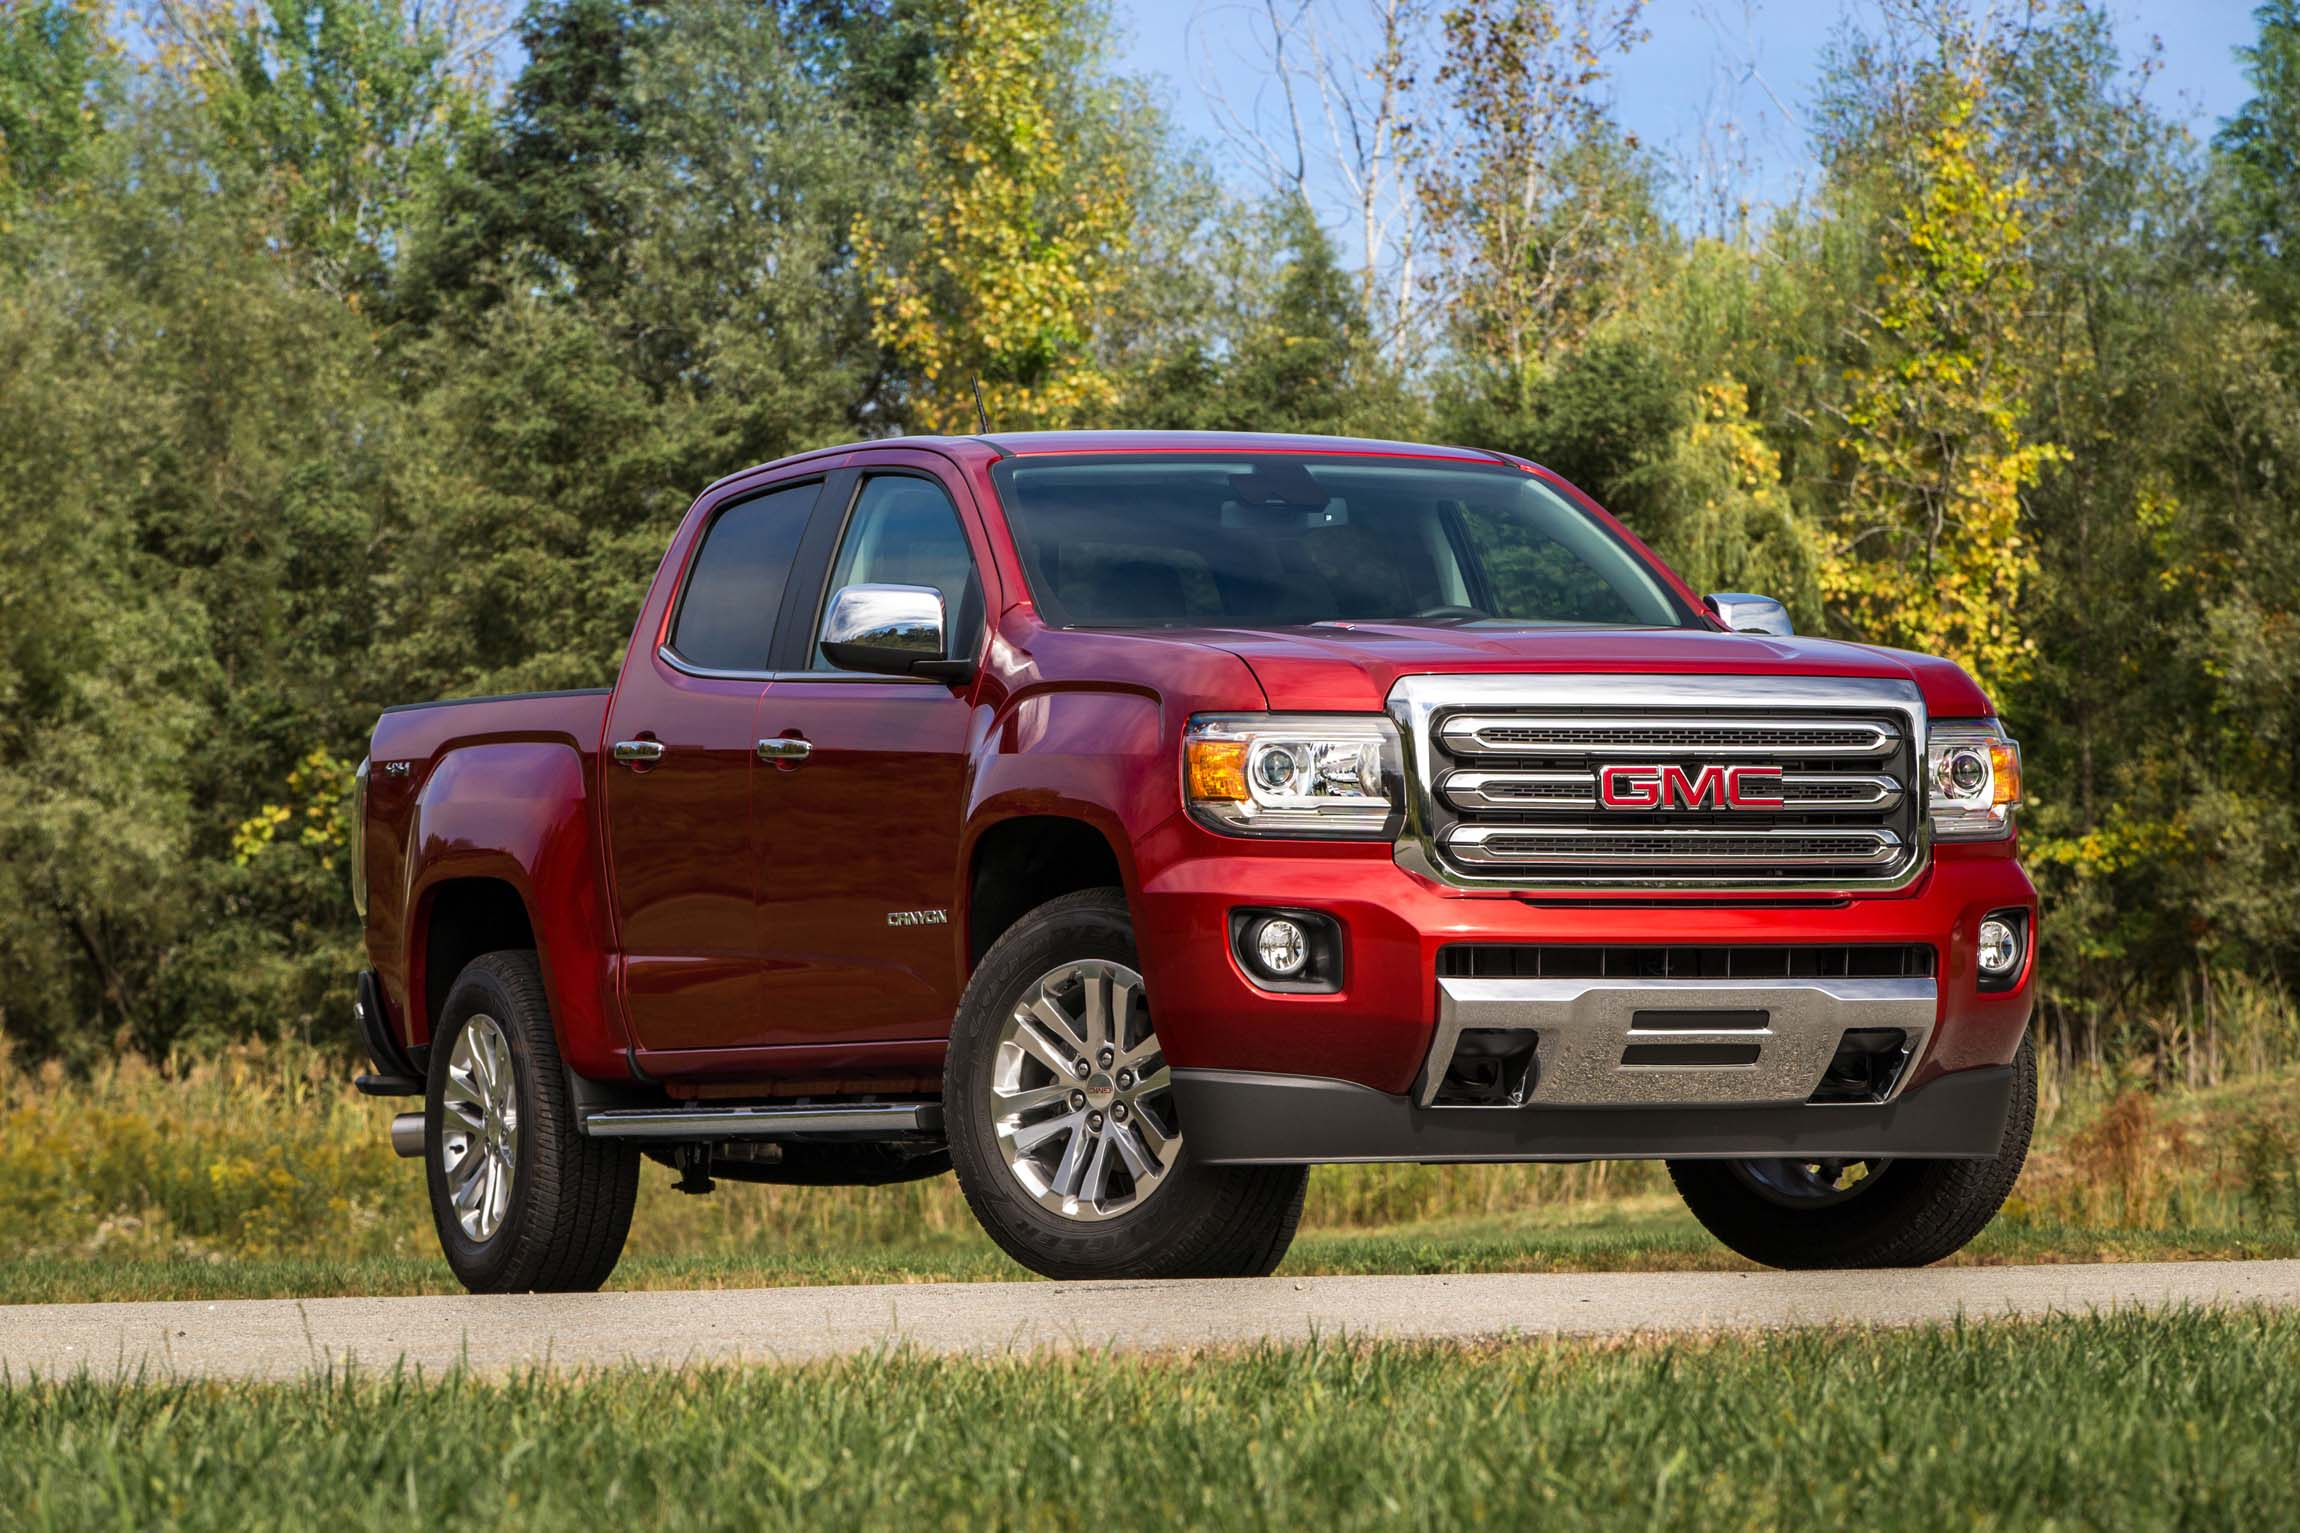 2020 Gmc Canyon Review.2020 Gmc Canyon Review Ratings Specs Prices And Photos